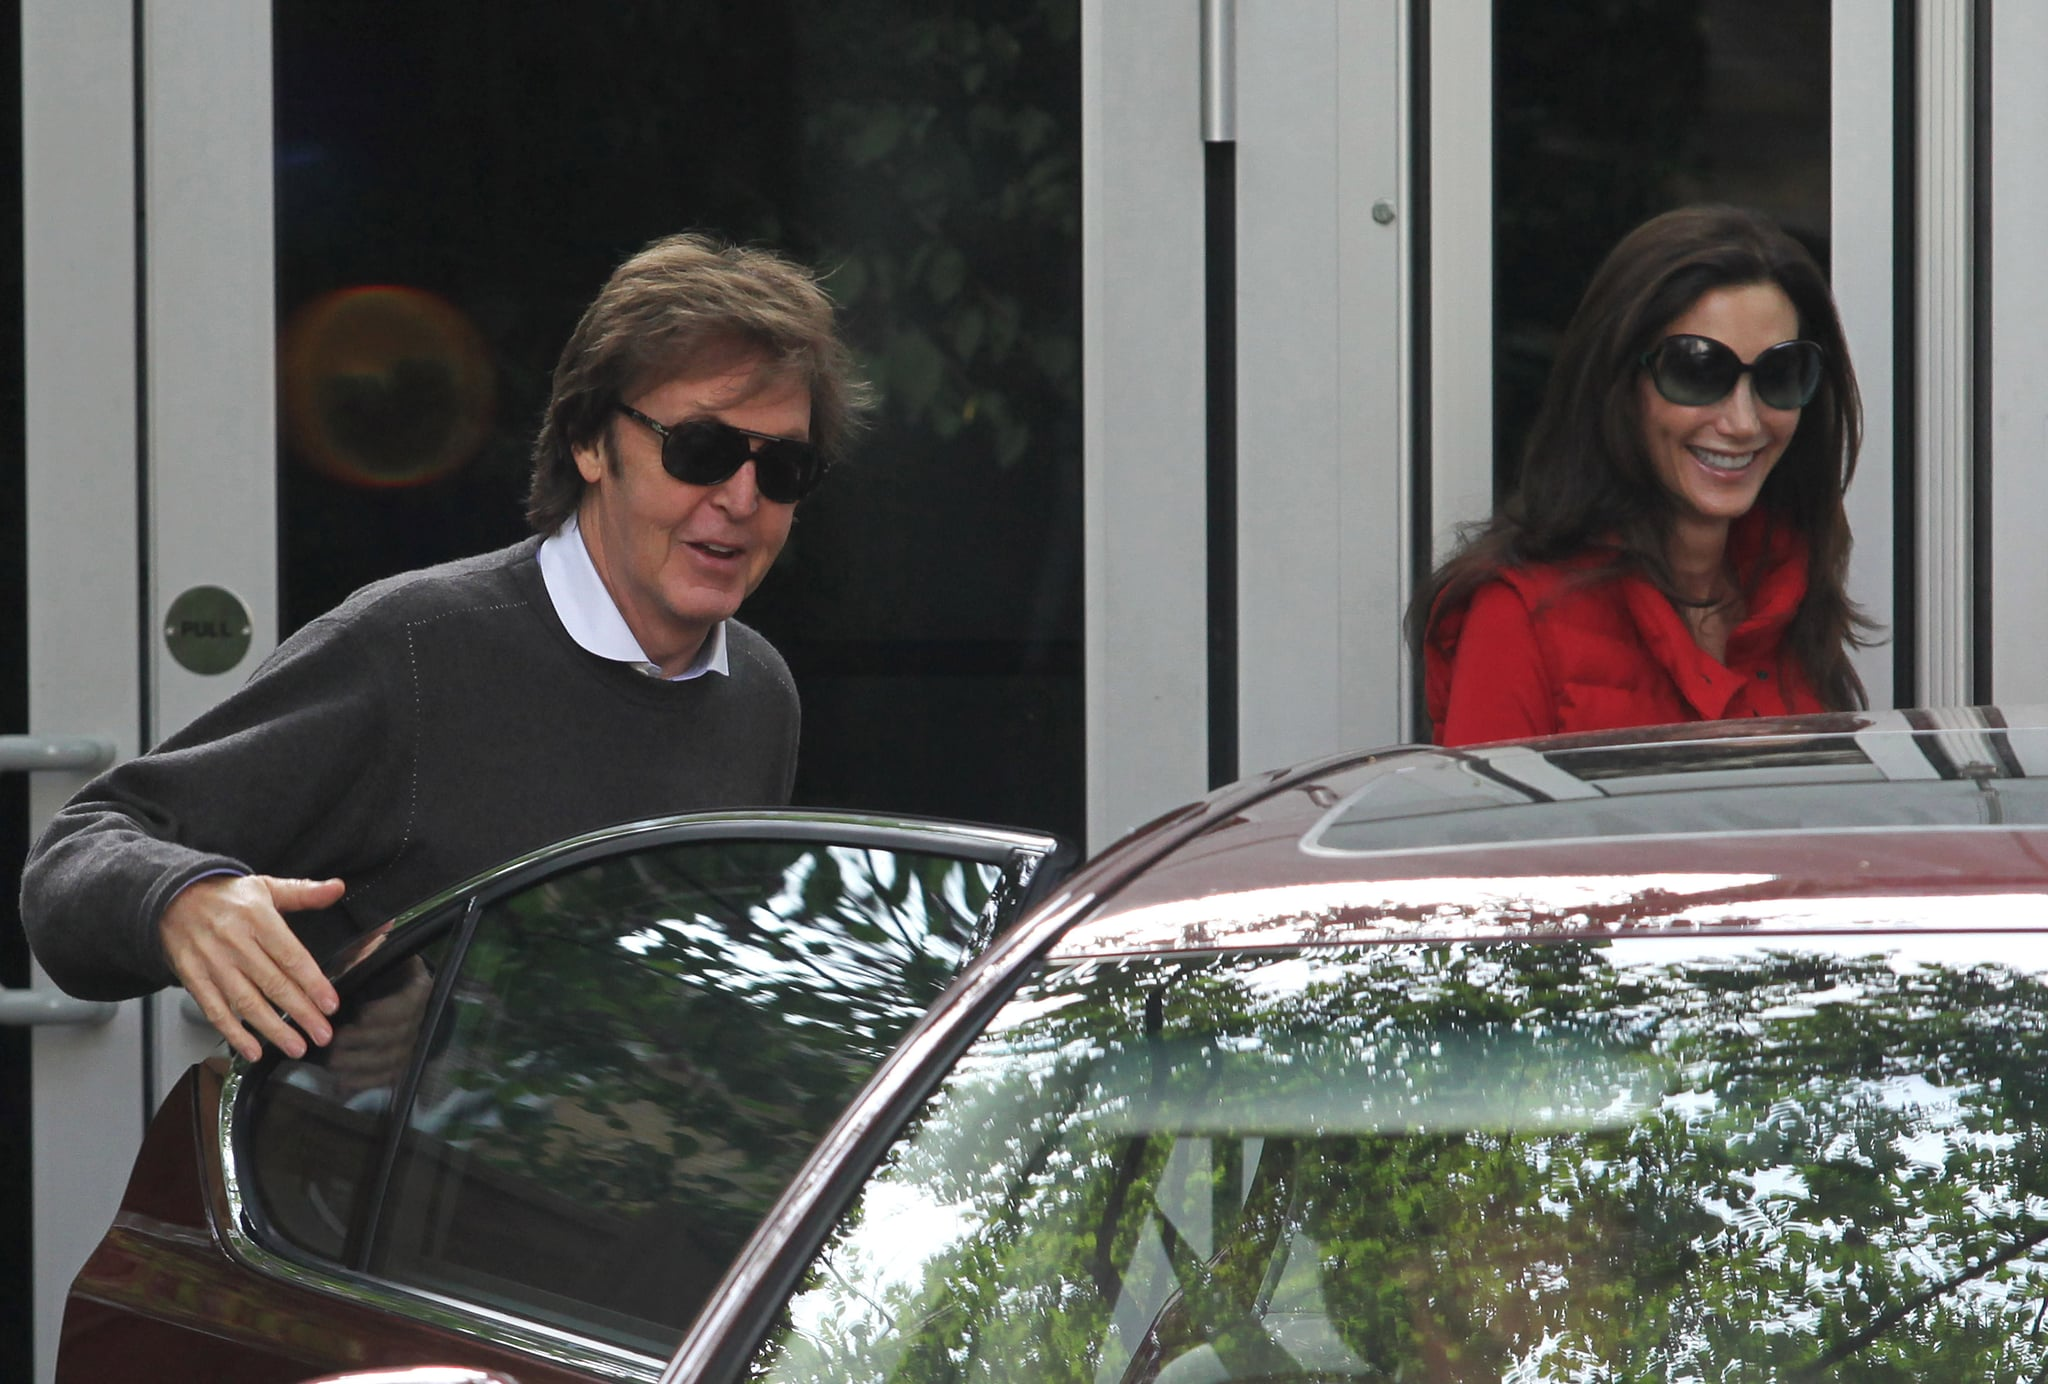 Paul McCartney hops into his car with wife Nancy Shevell.